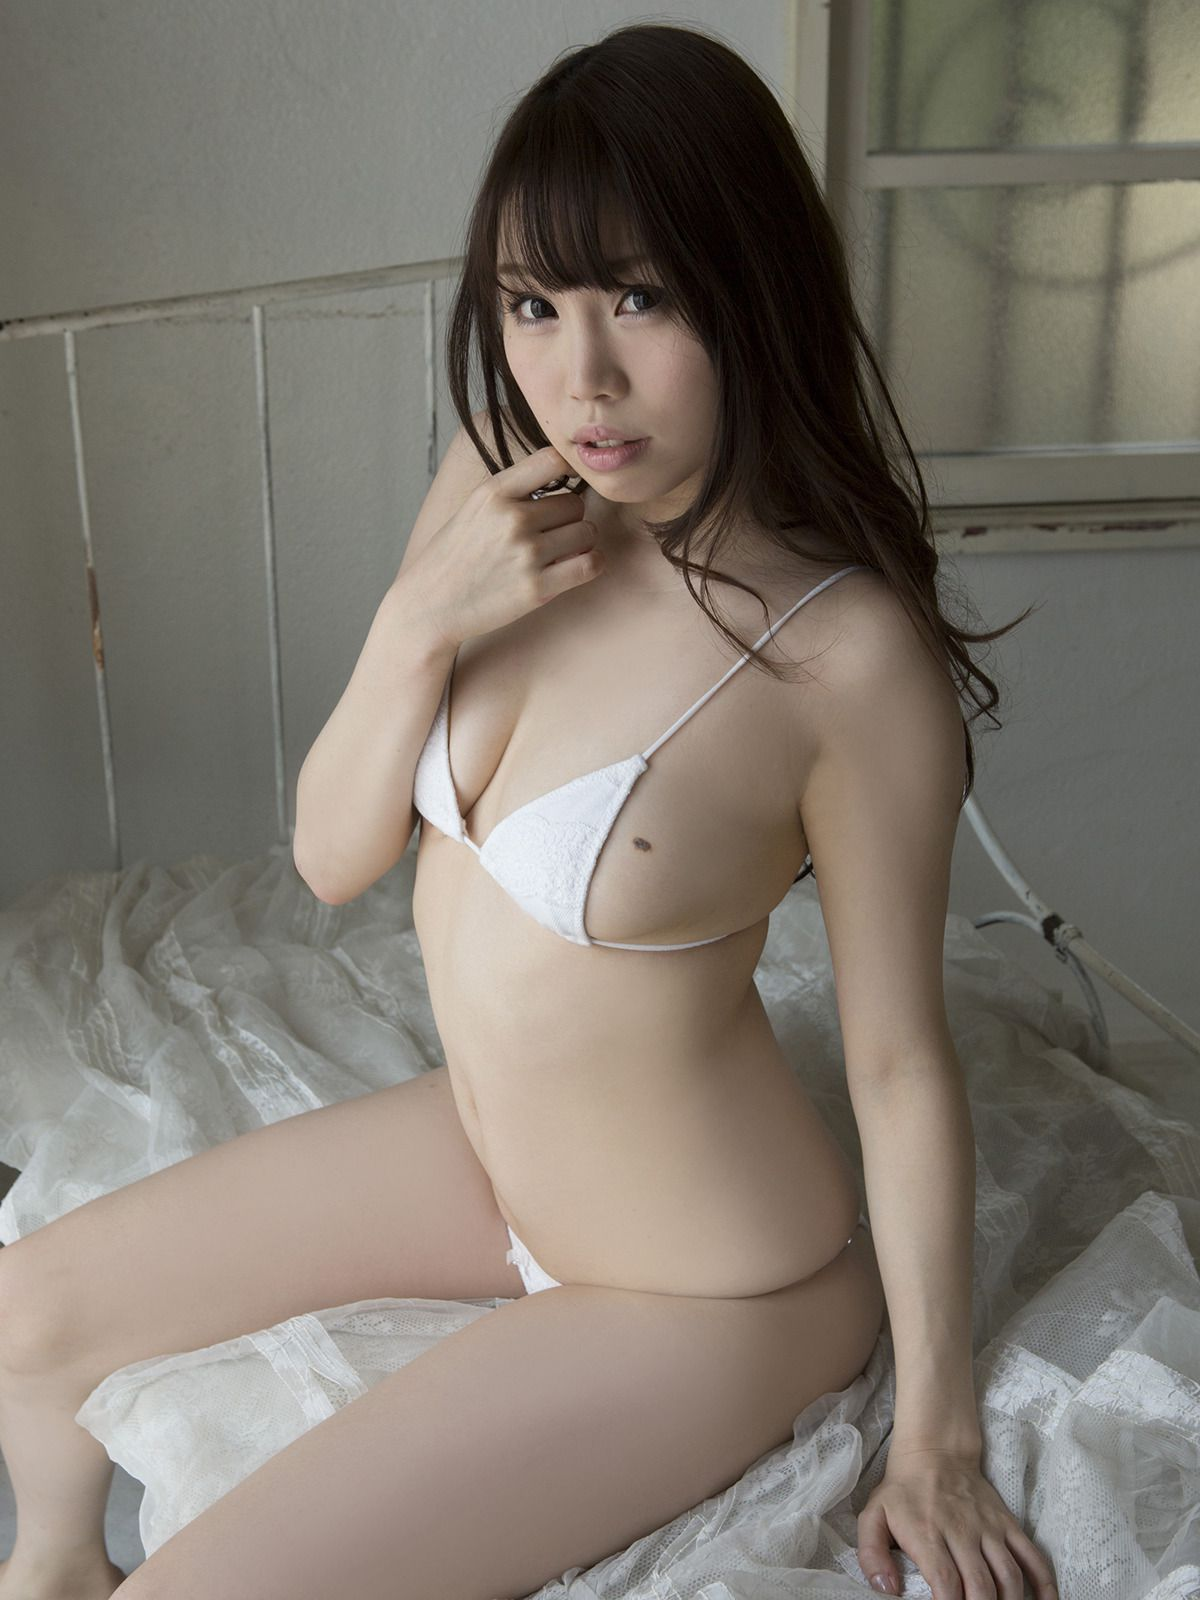 Mai Tsukamoto is naturally energized by the ample G breast009